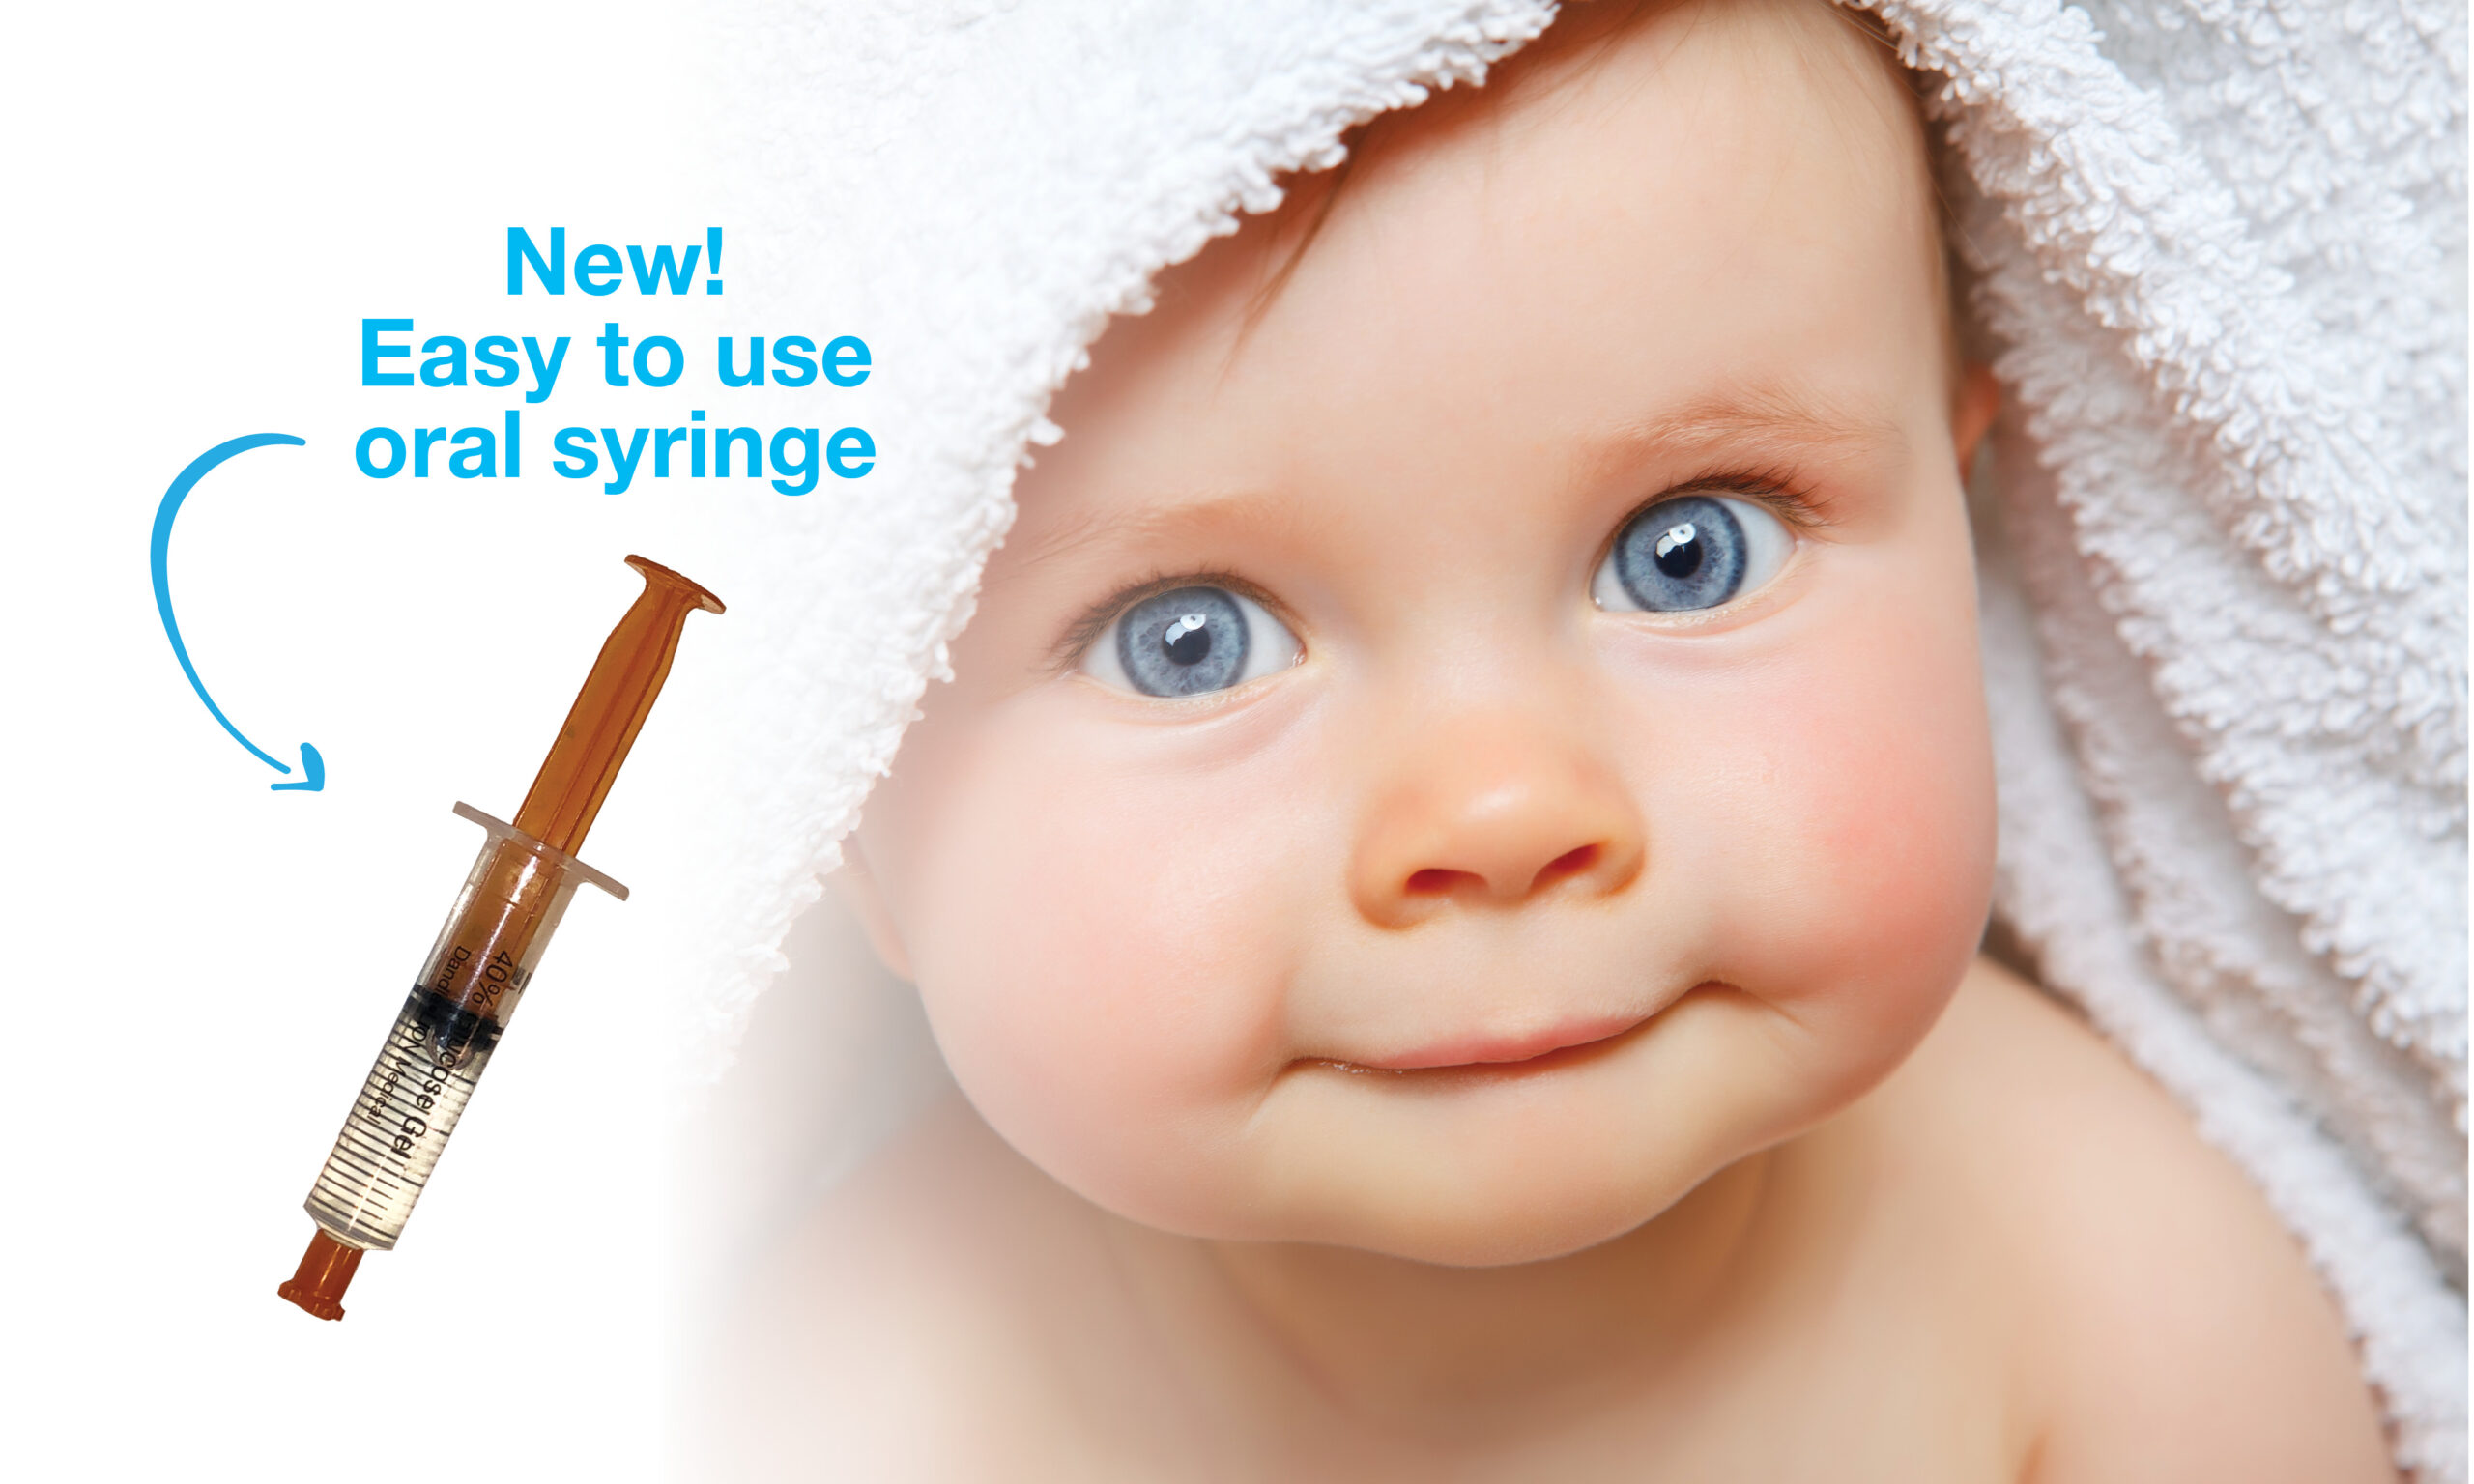 40% glucose specifically designed for newborns, organic ingredients, stays on finger for easy application